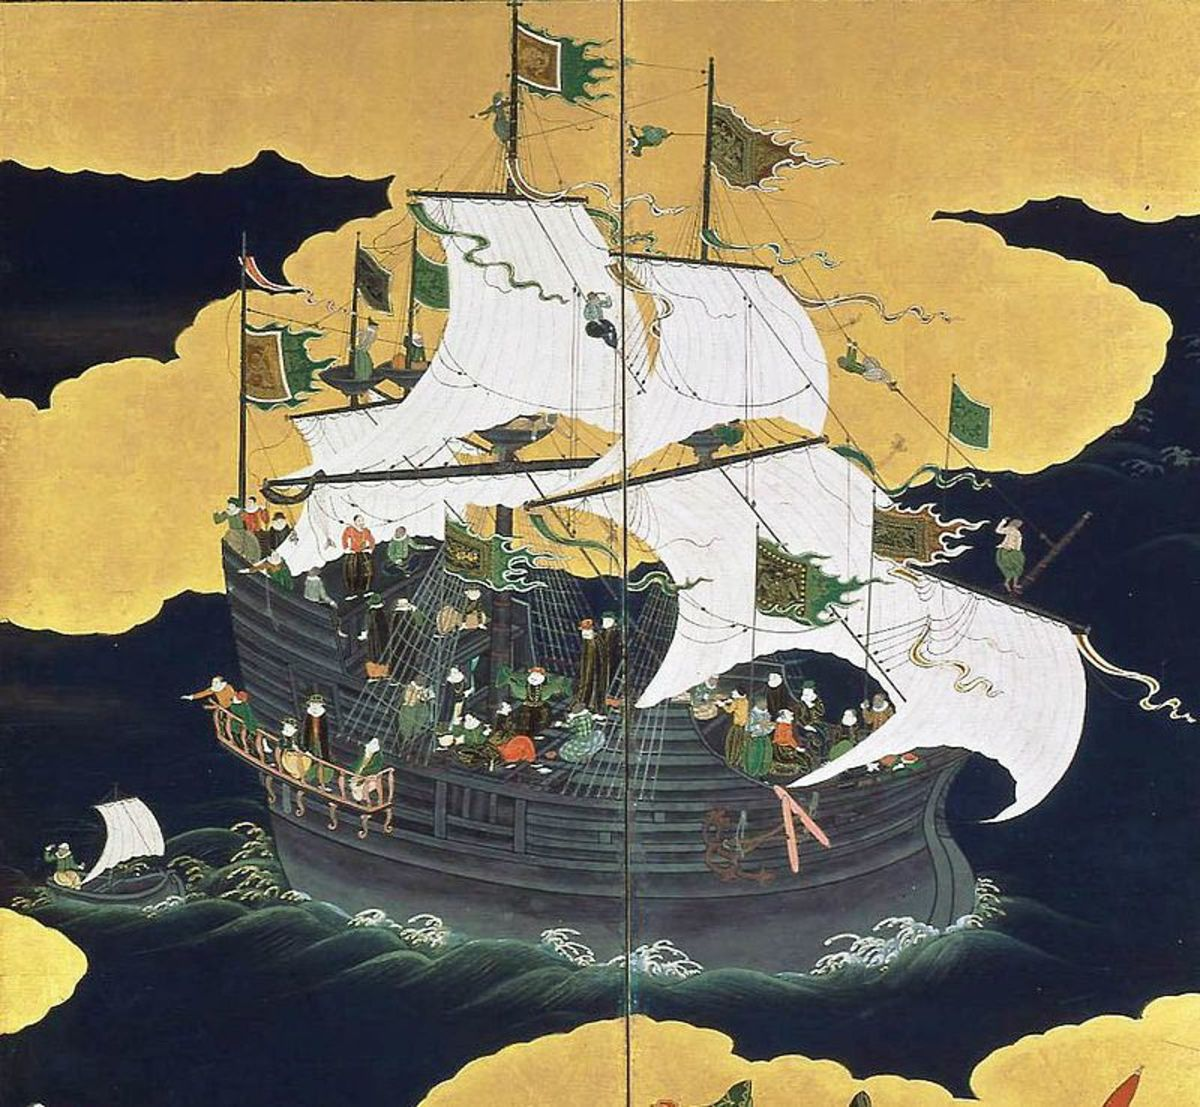 Portugal was the first European nation to establish trade links with China and Japan. Portuguese traders helped to found the city of Nagasaki in 1543.